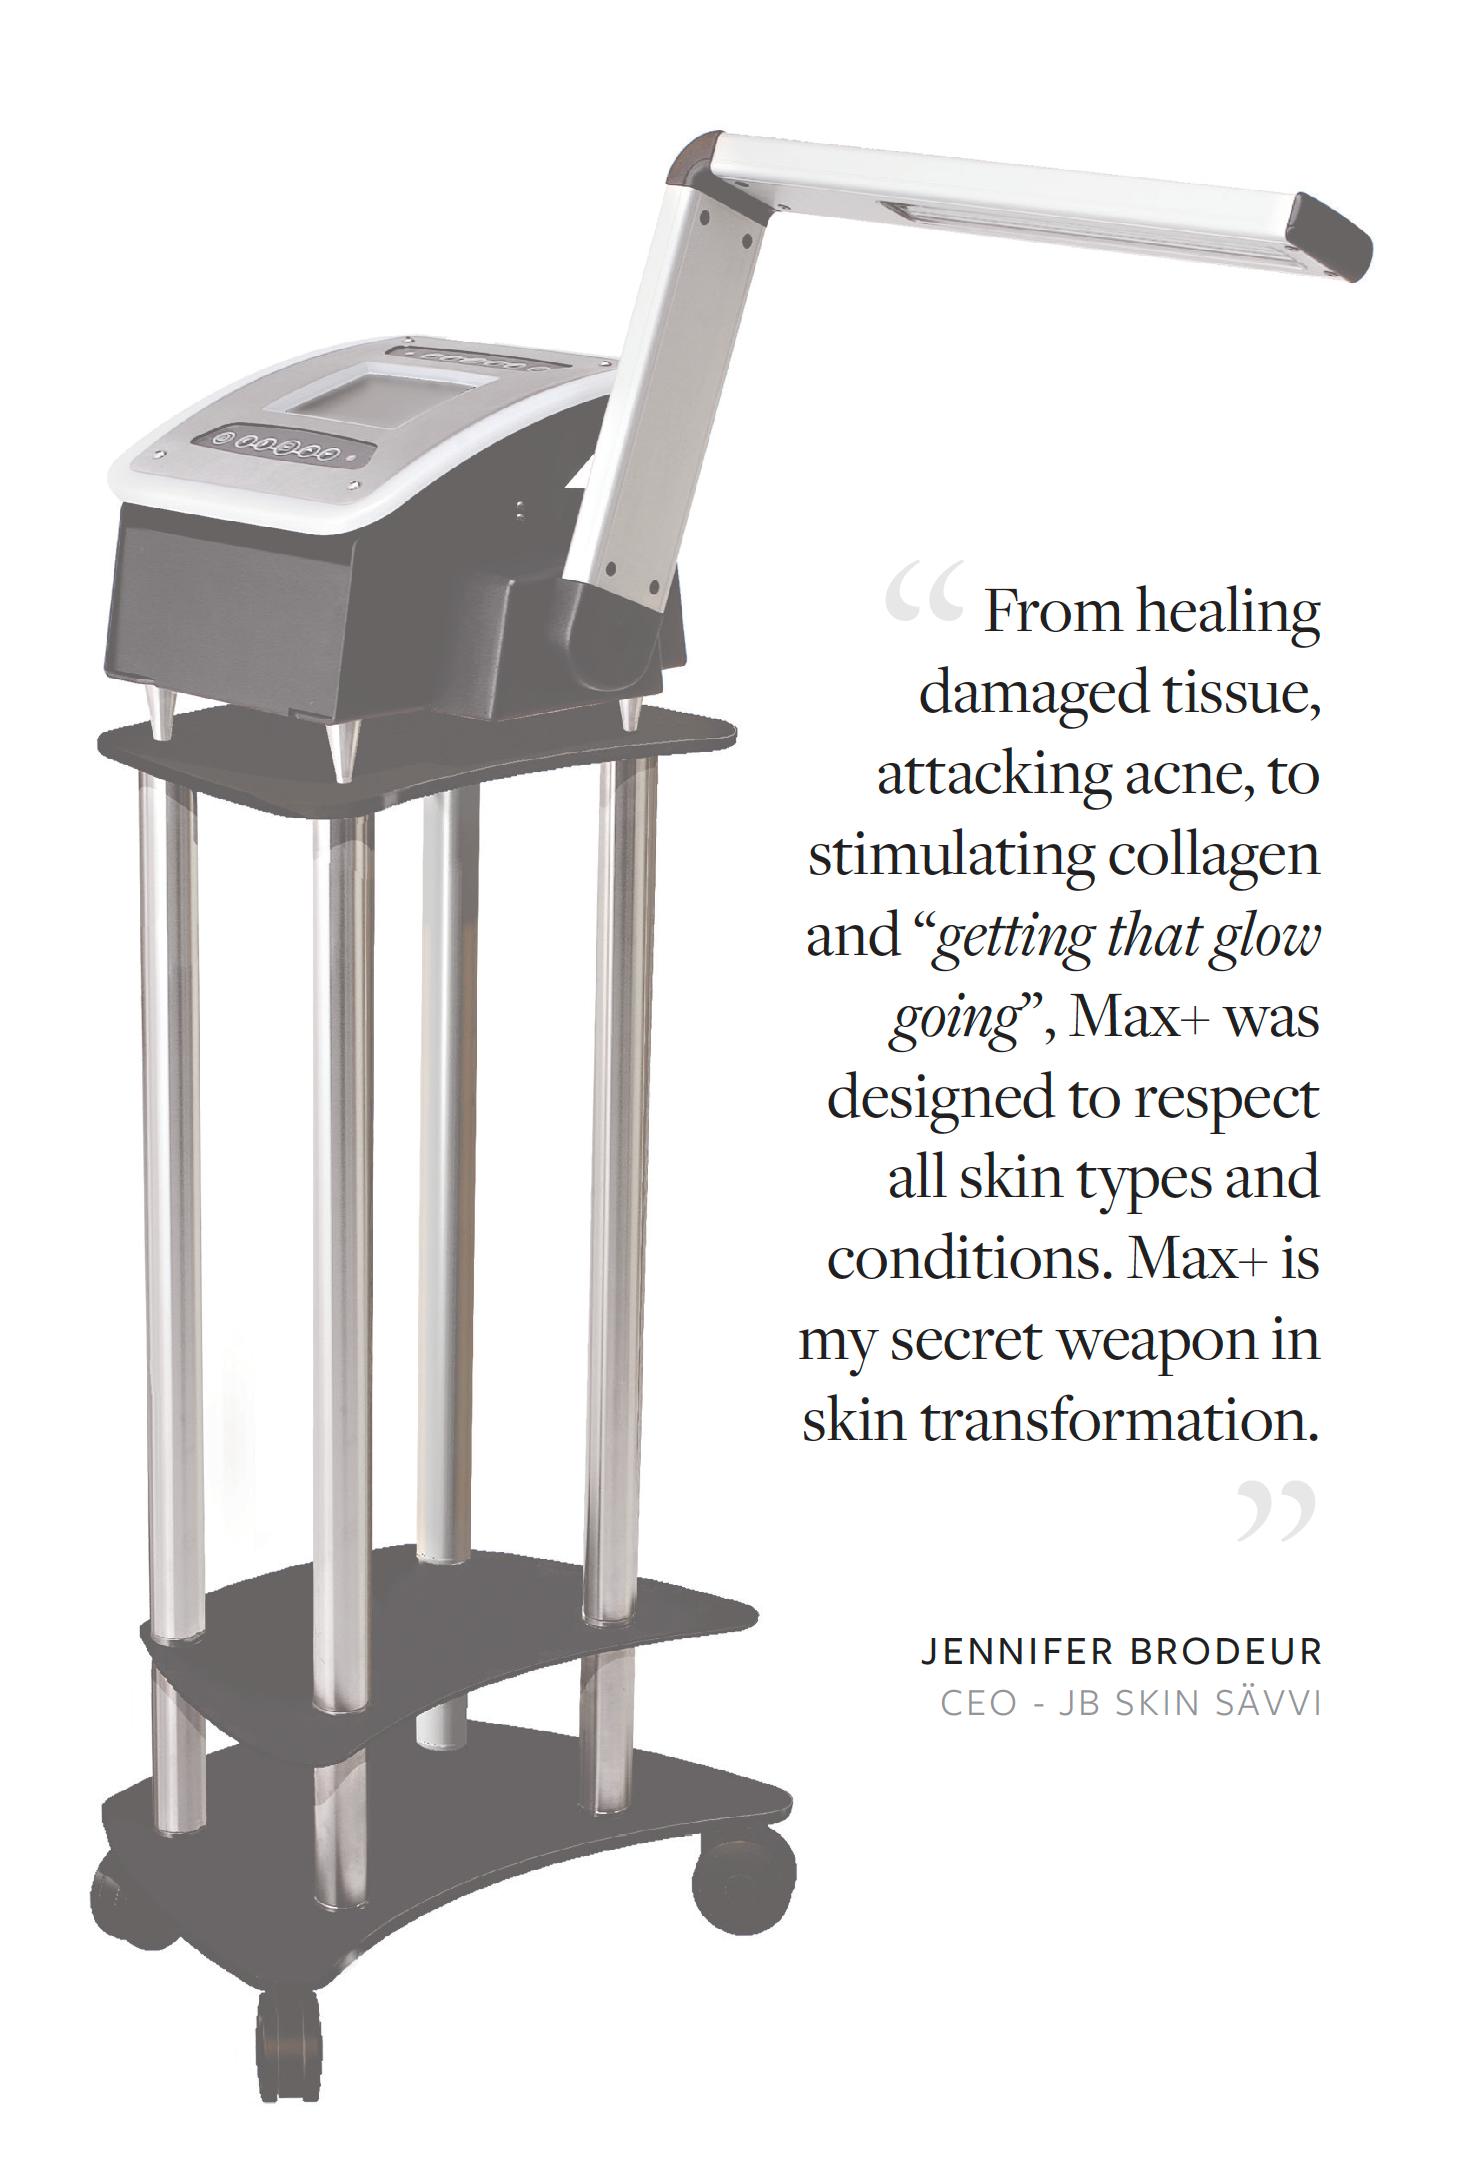 "From healing damaged tissue, attacking acne, to stimulating collagen and ""getting that glow going"", Max+ was designed to respect all skin types and conditions. Max+ is my secret weapon in skin transformation."